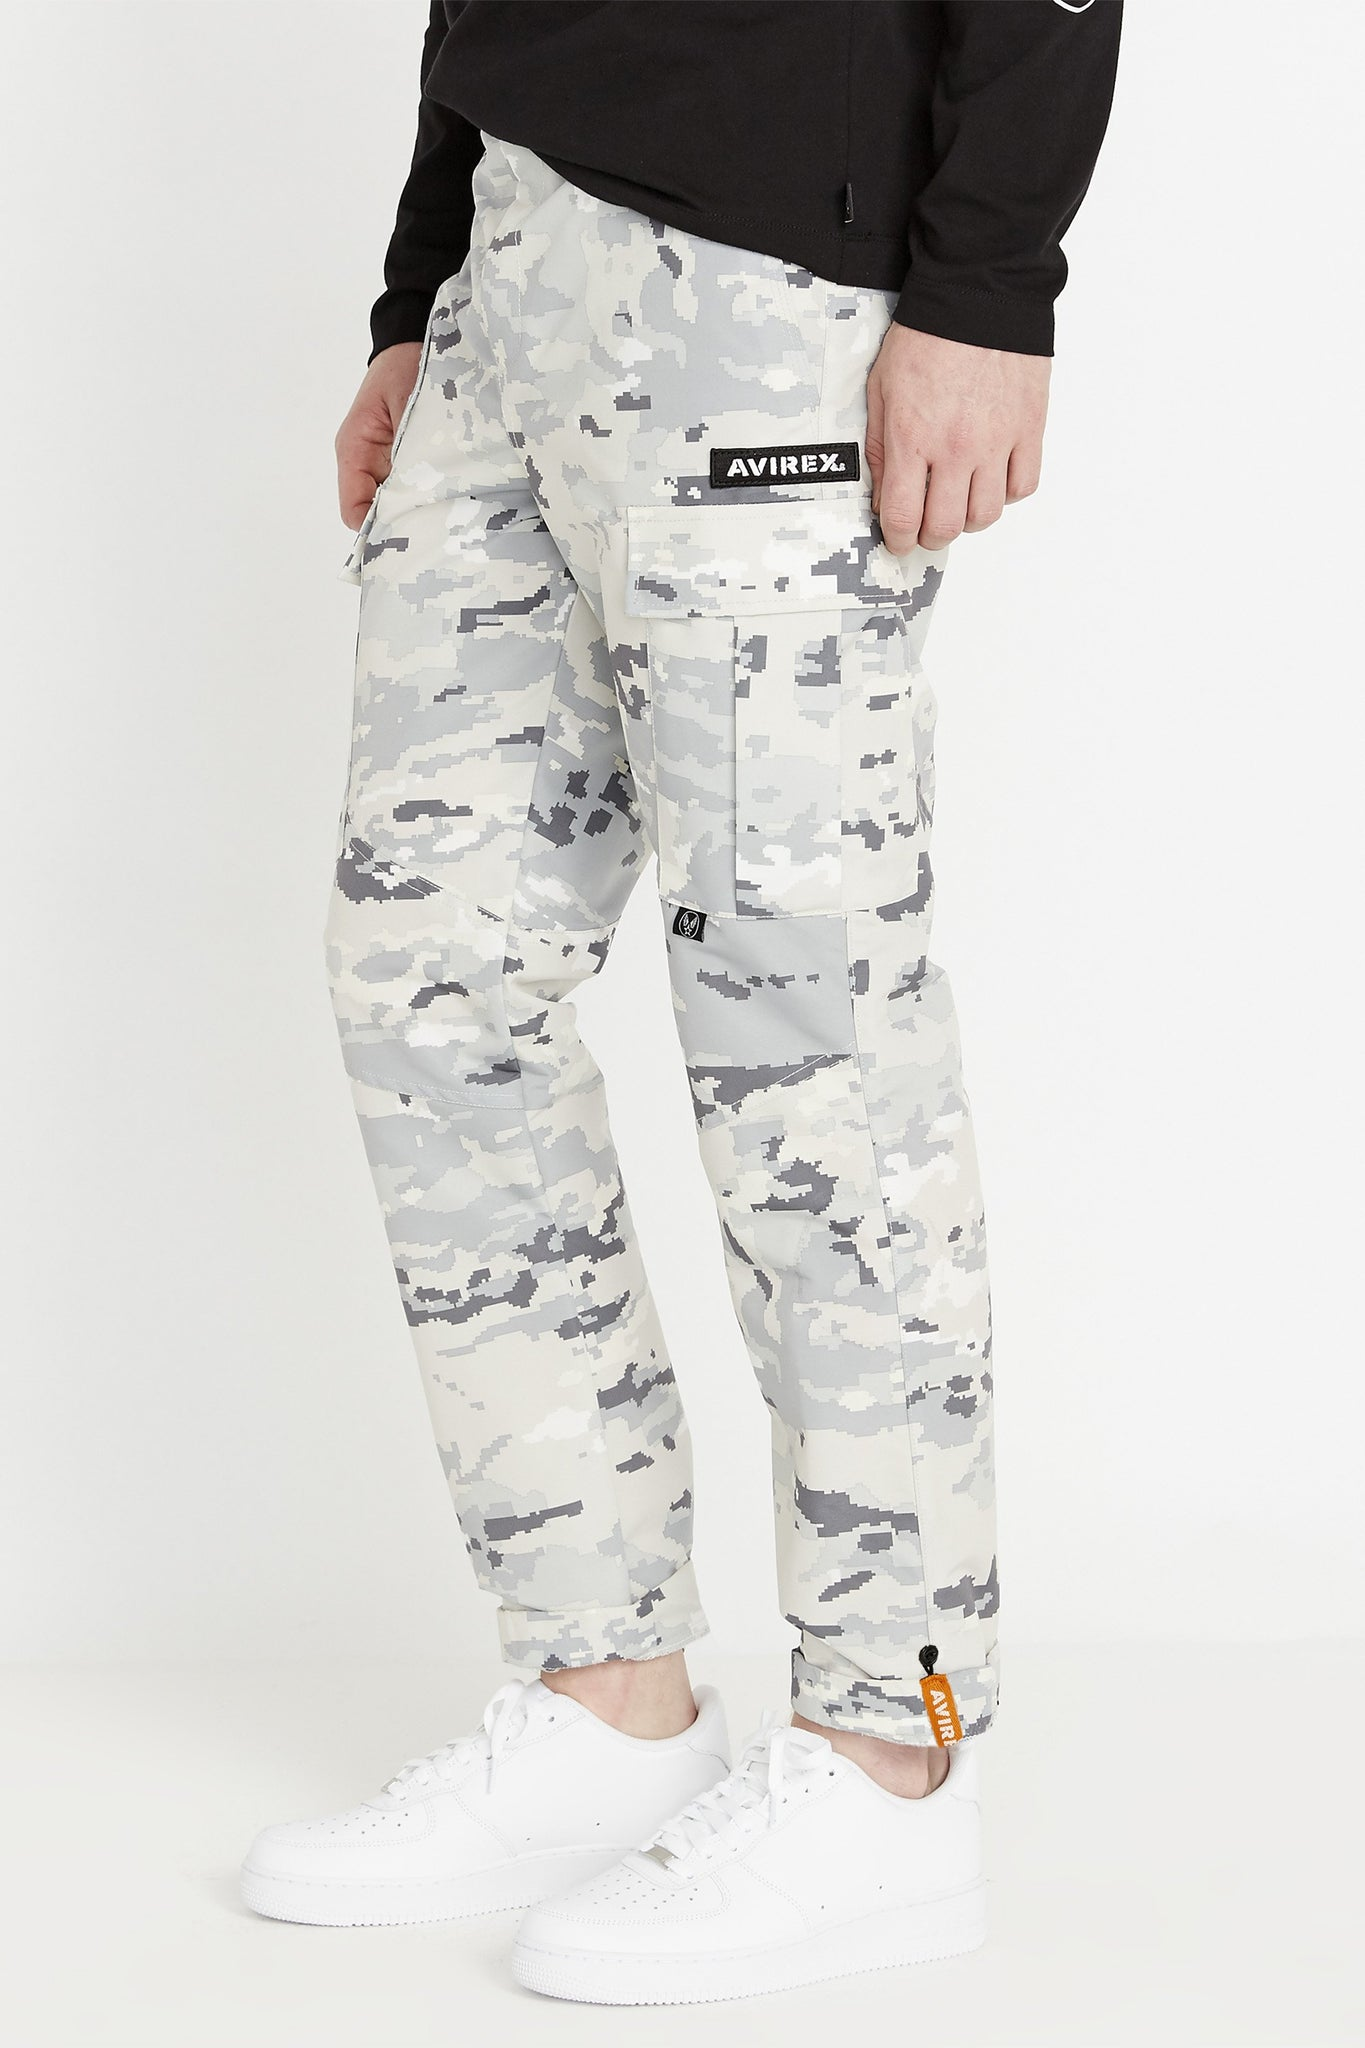 Side view of digital snow camo print pants with Avirex patch above side cargo pockets and rolled up hem with reflective logo